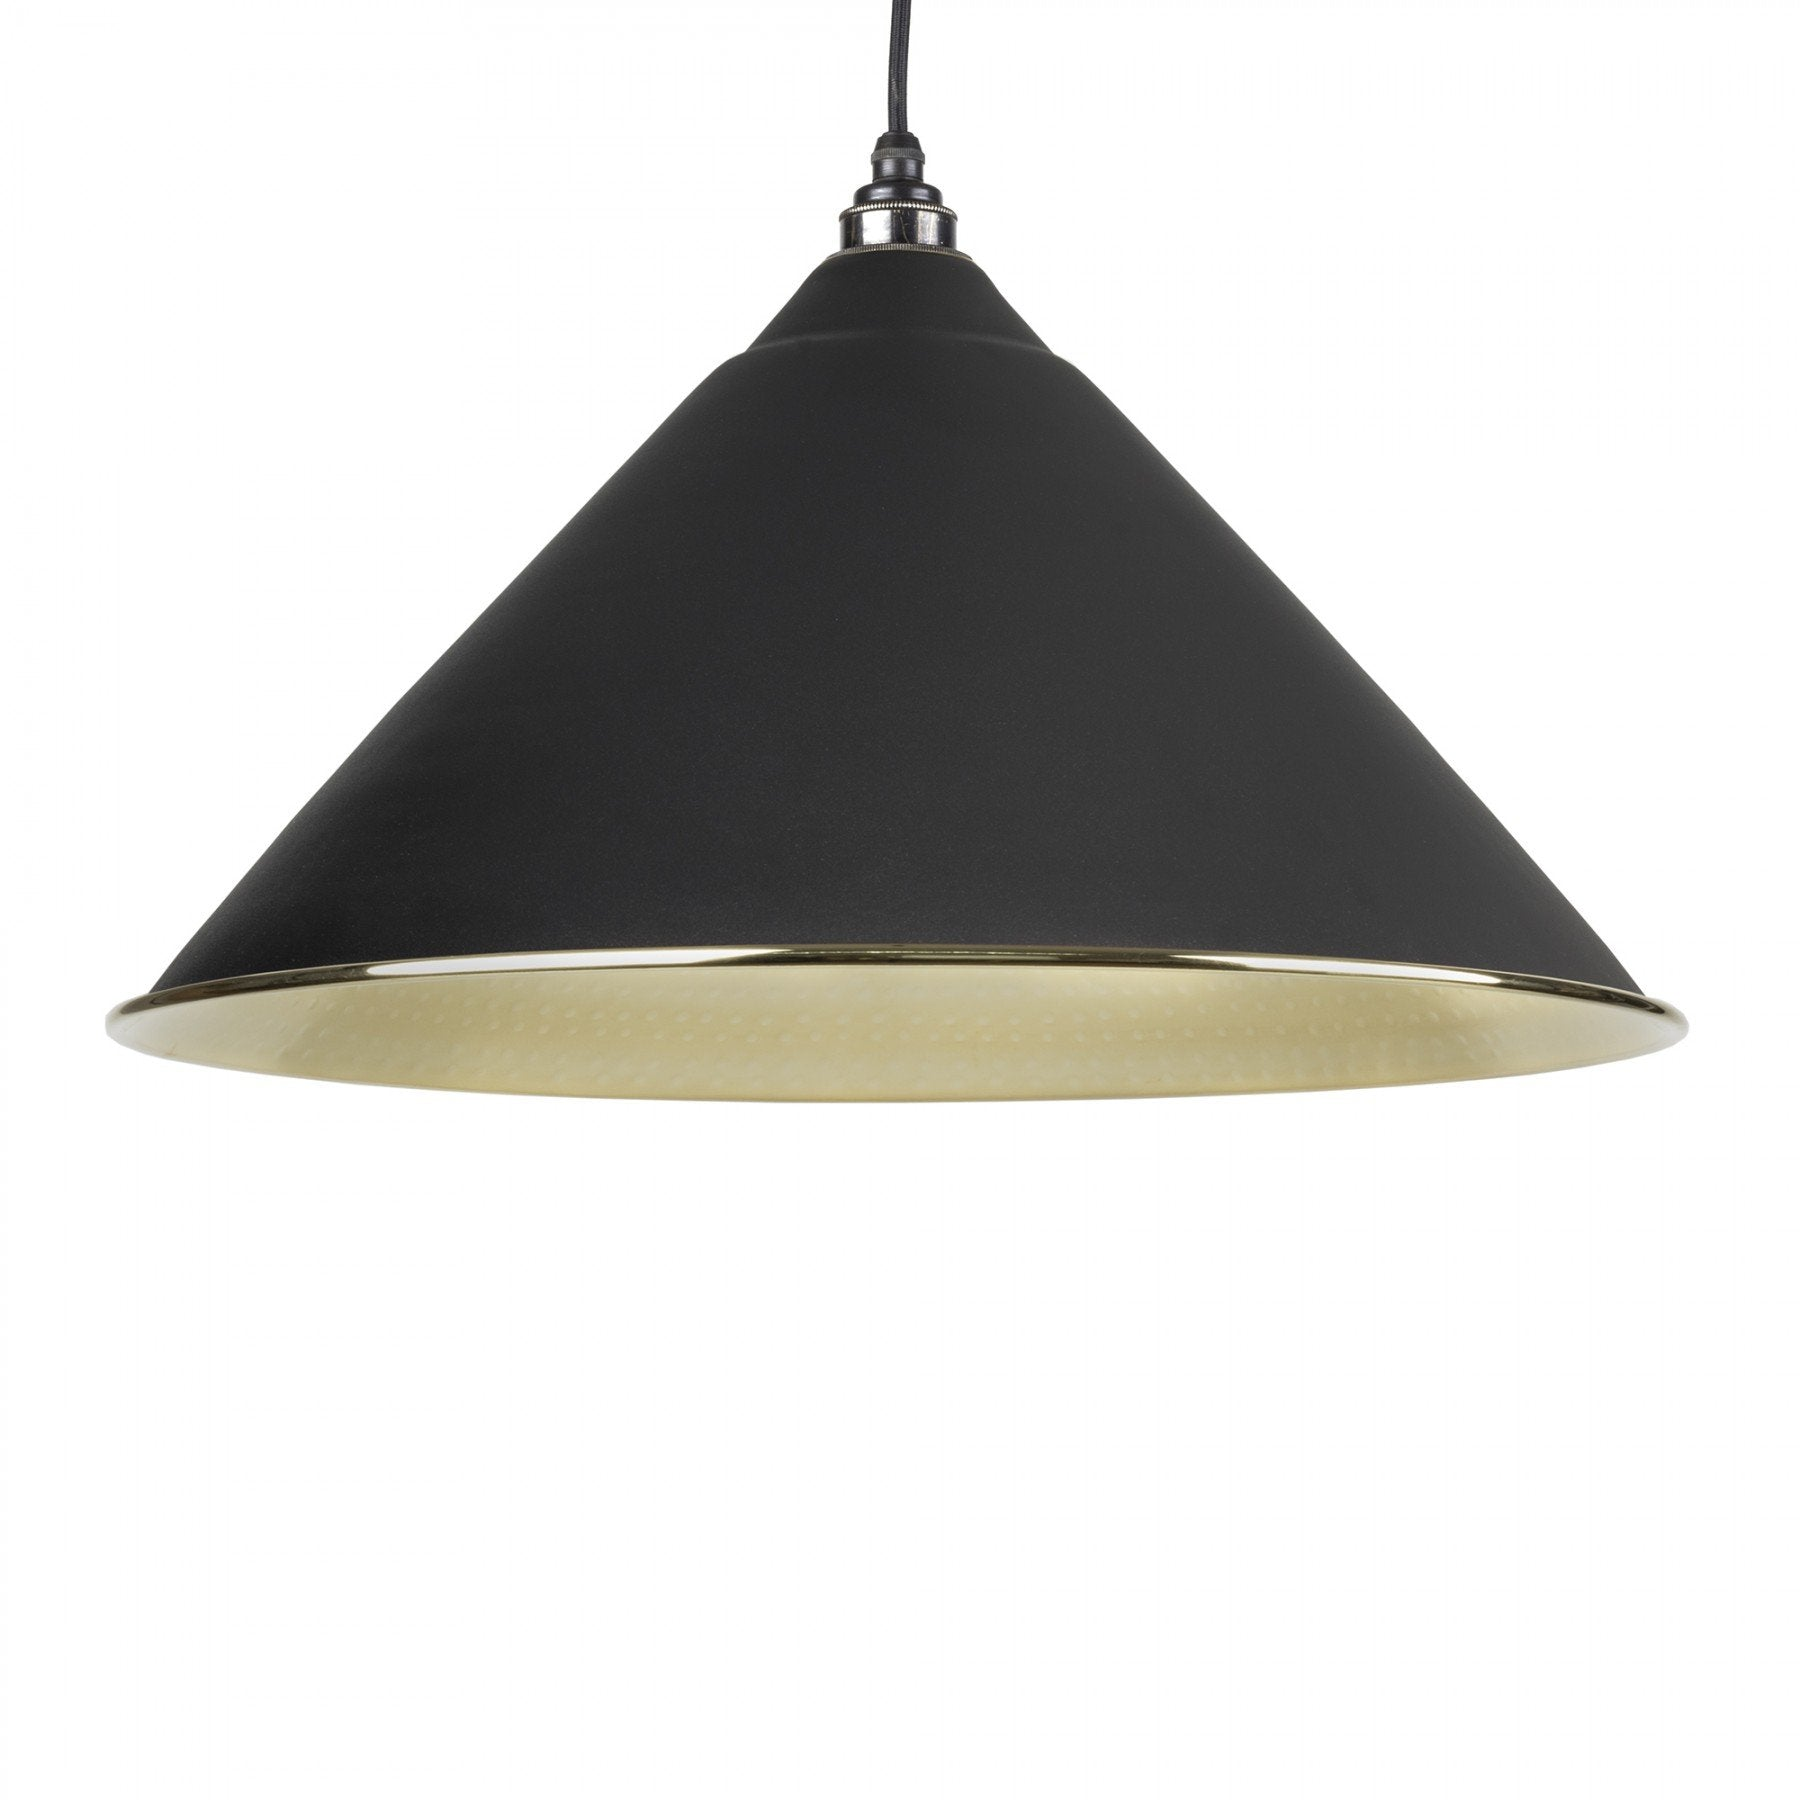 From The Anvil Black & Hammered Brass Interior Hockley Pendant - No.42 Interiors